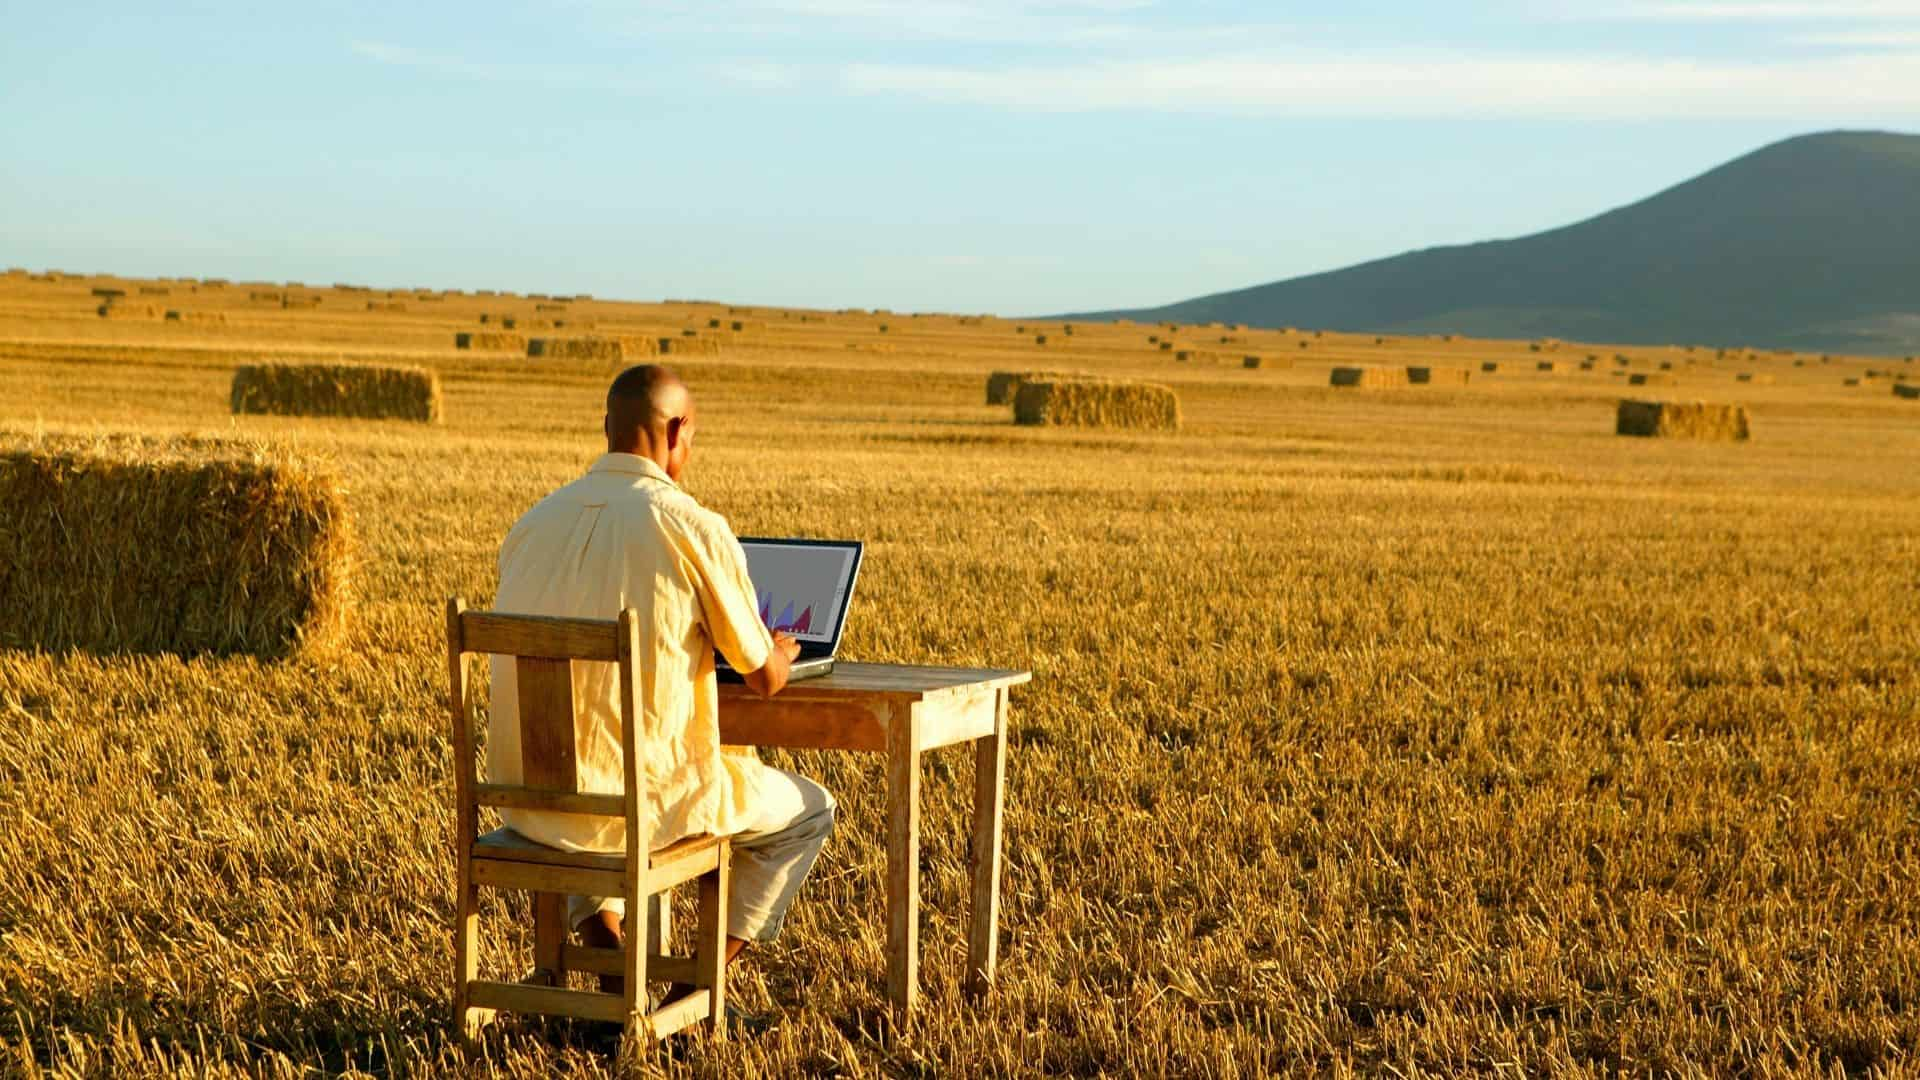 Benefits of High-Speed Internet for Rural Communities